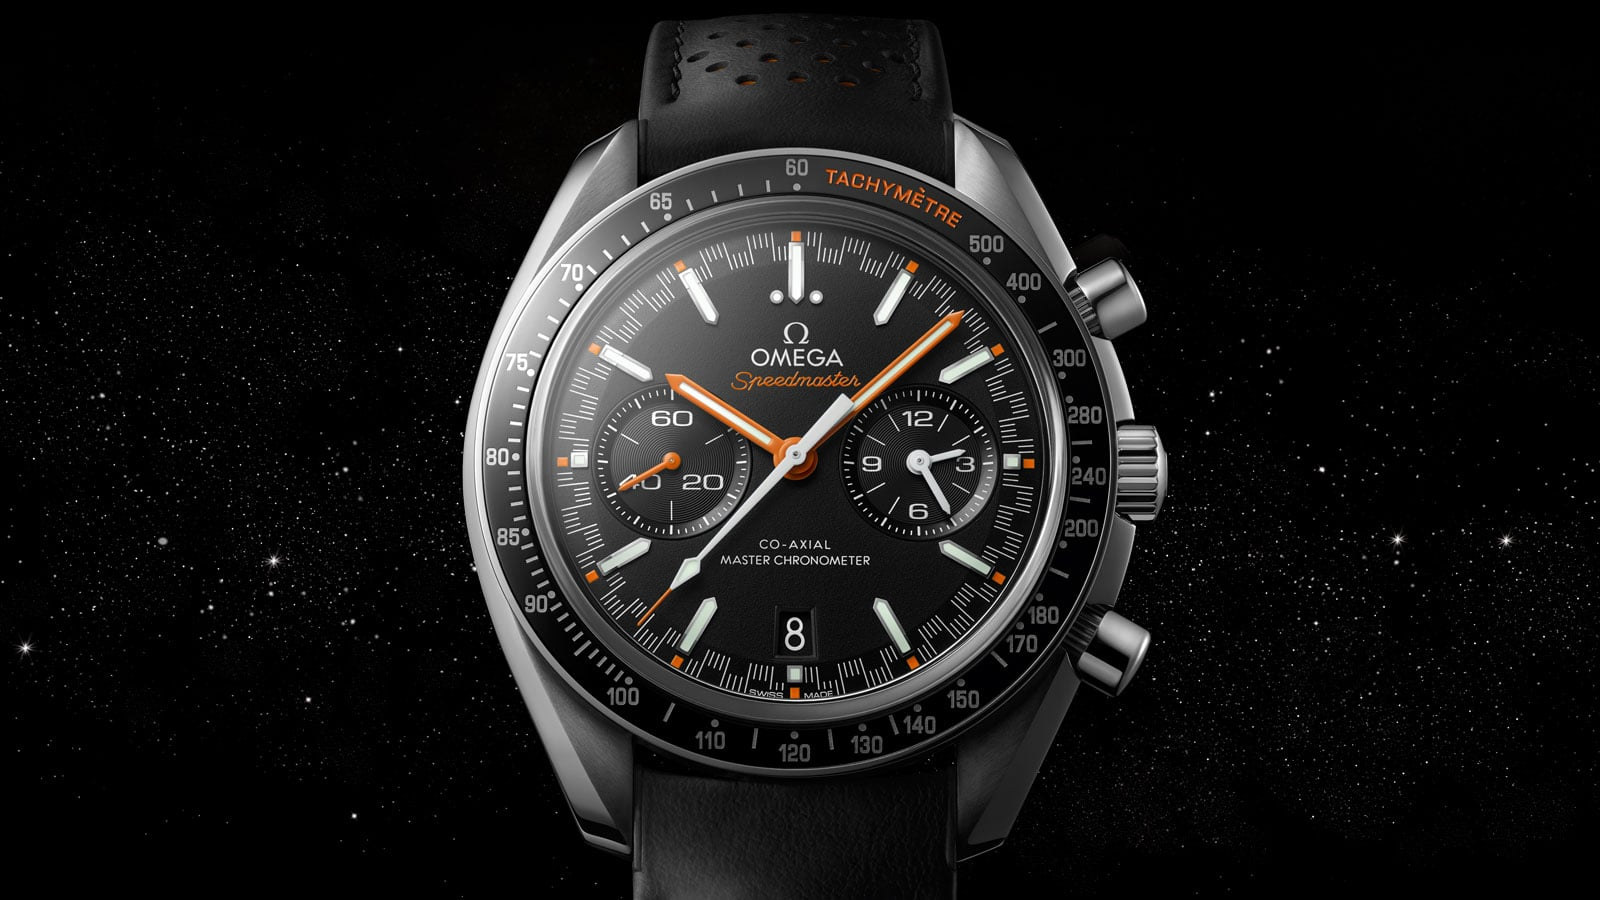 Close-up view of the SPEEDMASTER RACING MASTER CHRONOMETER 44.25 millimeters steel case with black dial